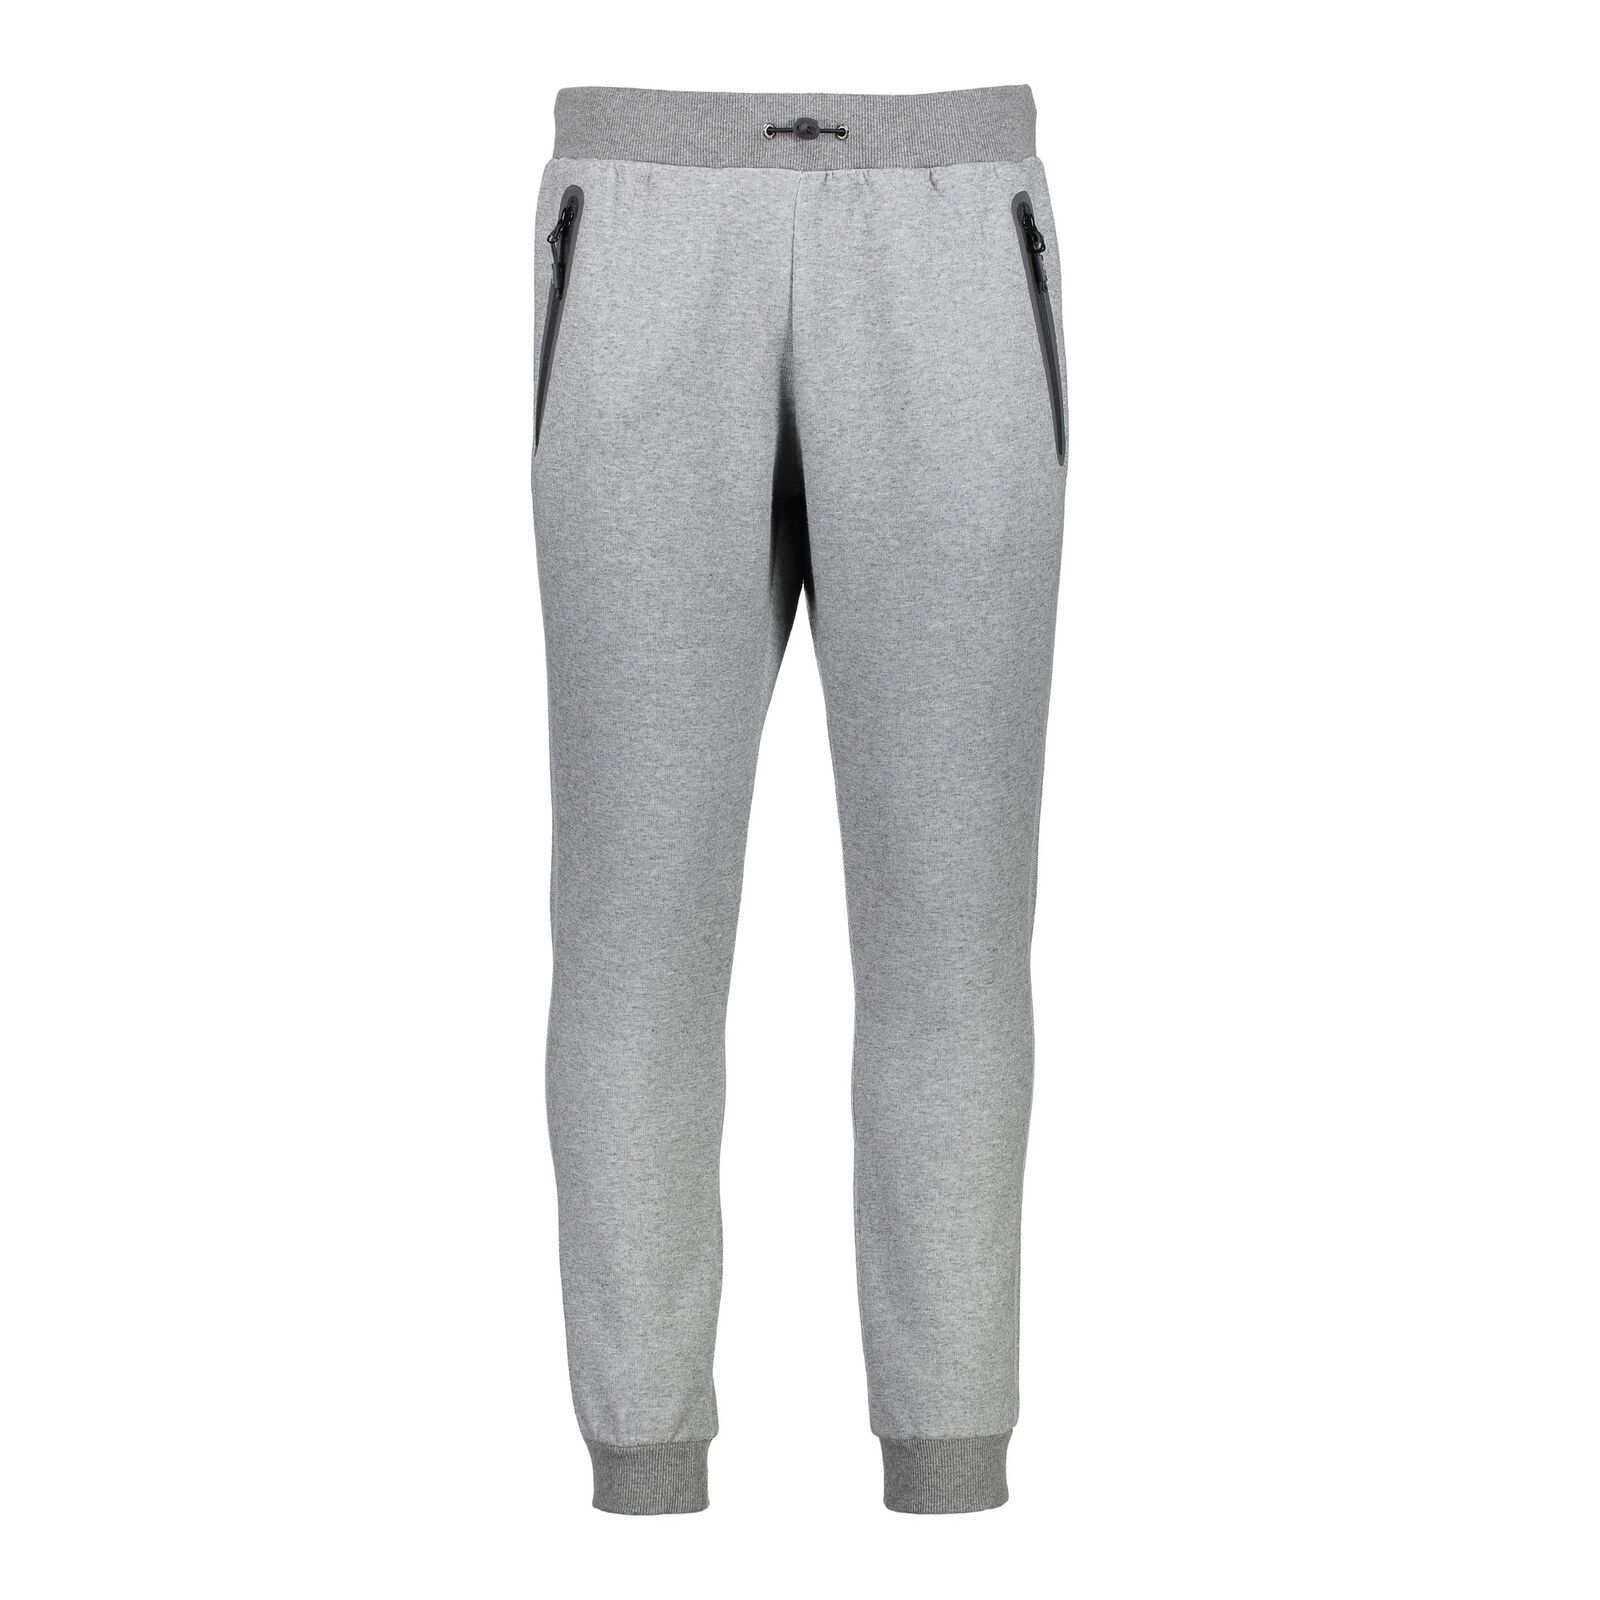 CMP Pantaloni Felpati Man Long grey Traspirante Riscaldamento  Ericamix  good reputation